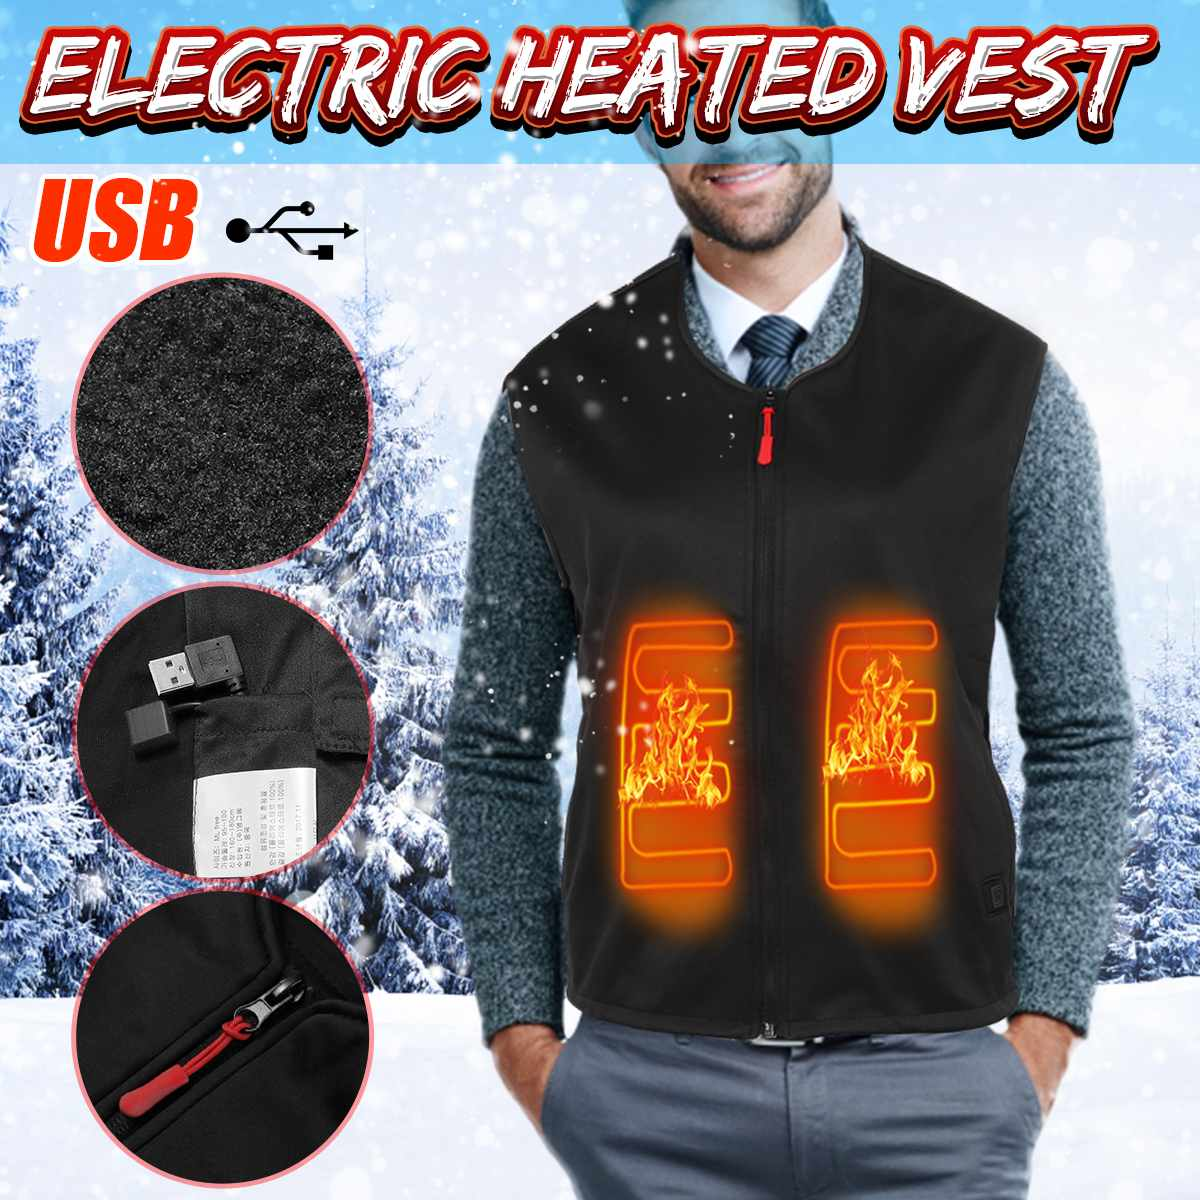 Electric USB Heating Vest Warm Heater for Body Heated Waistcoat Heating Clothing Jacket Heated Mat Pad for Men Women Outdoor|Electric Heaters| |  -